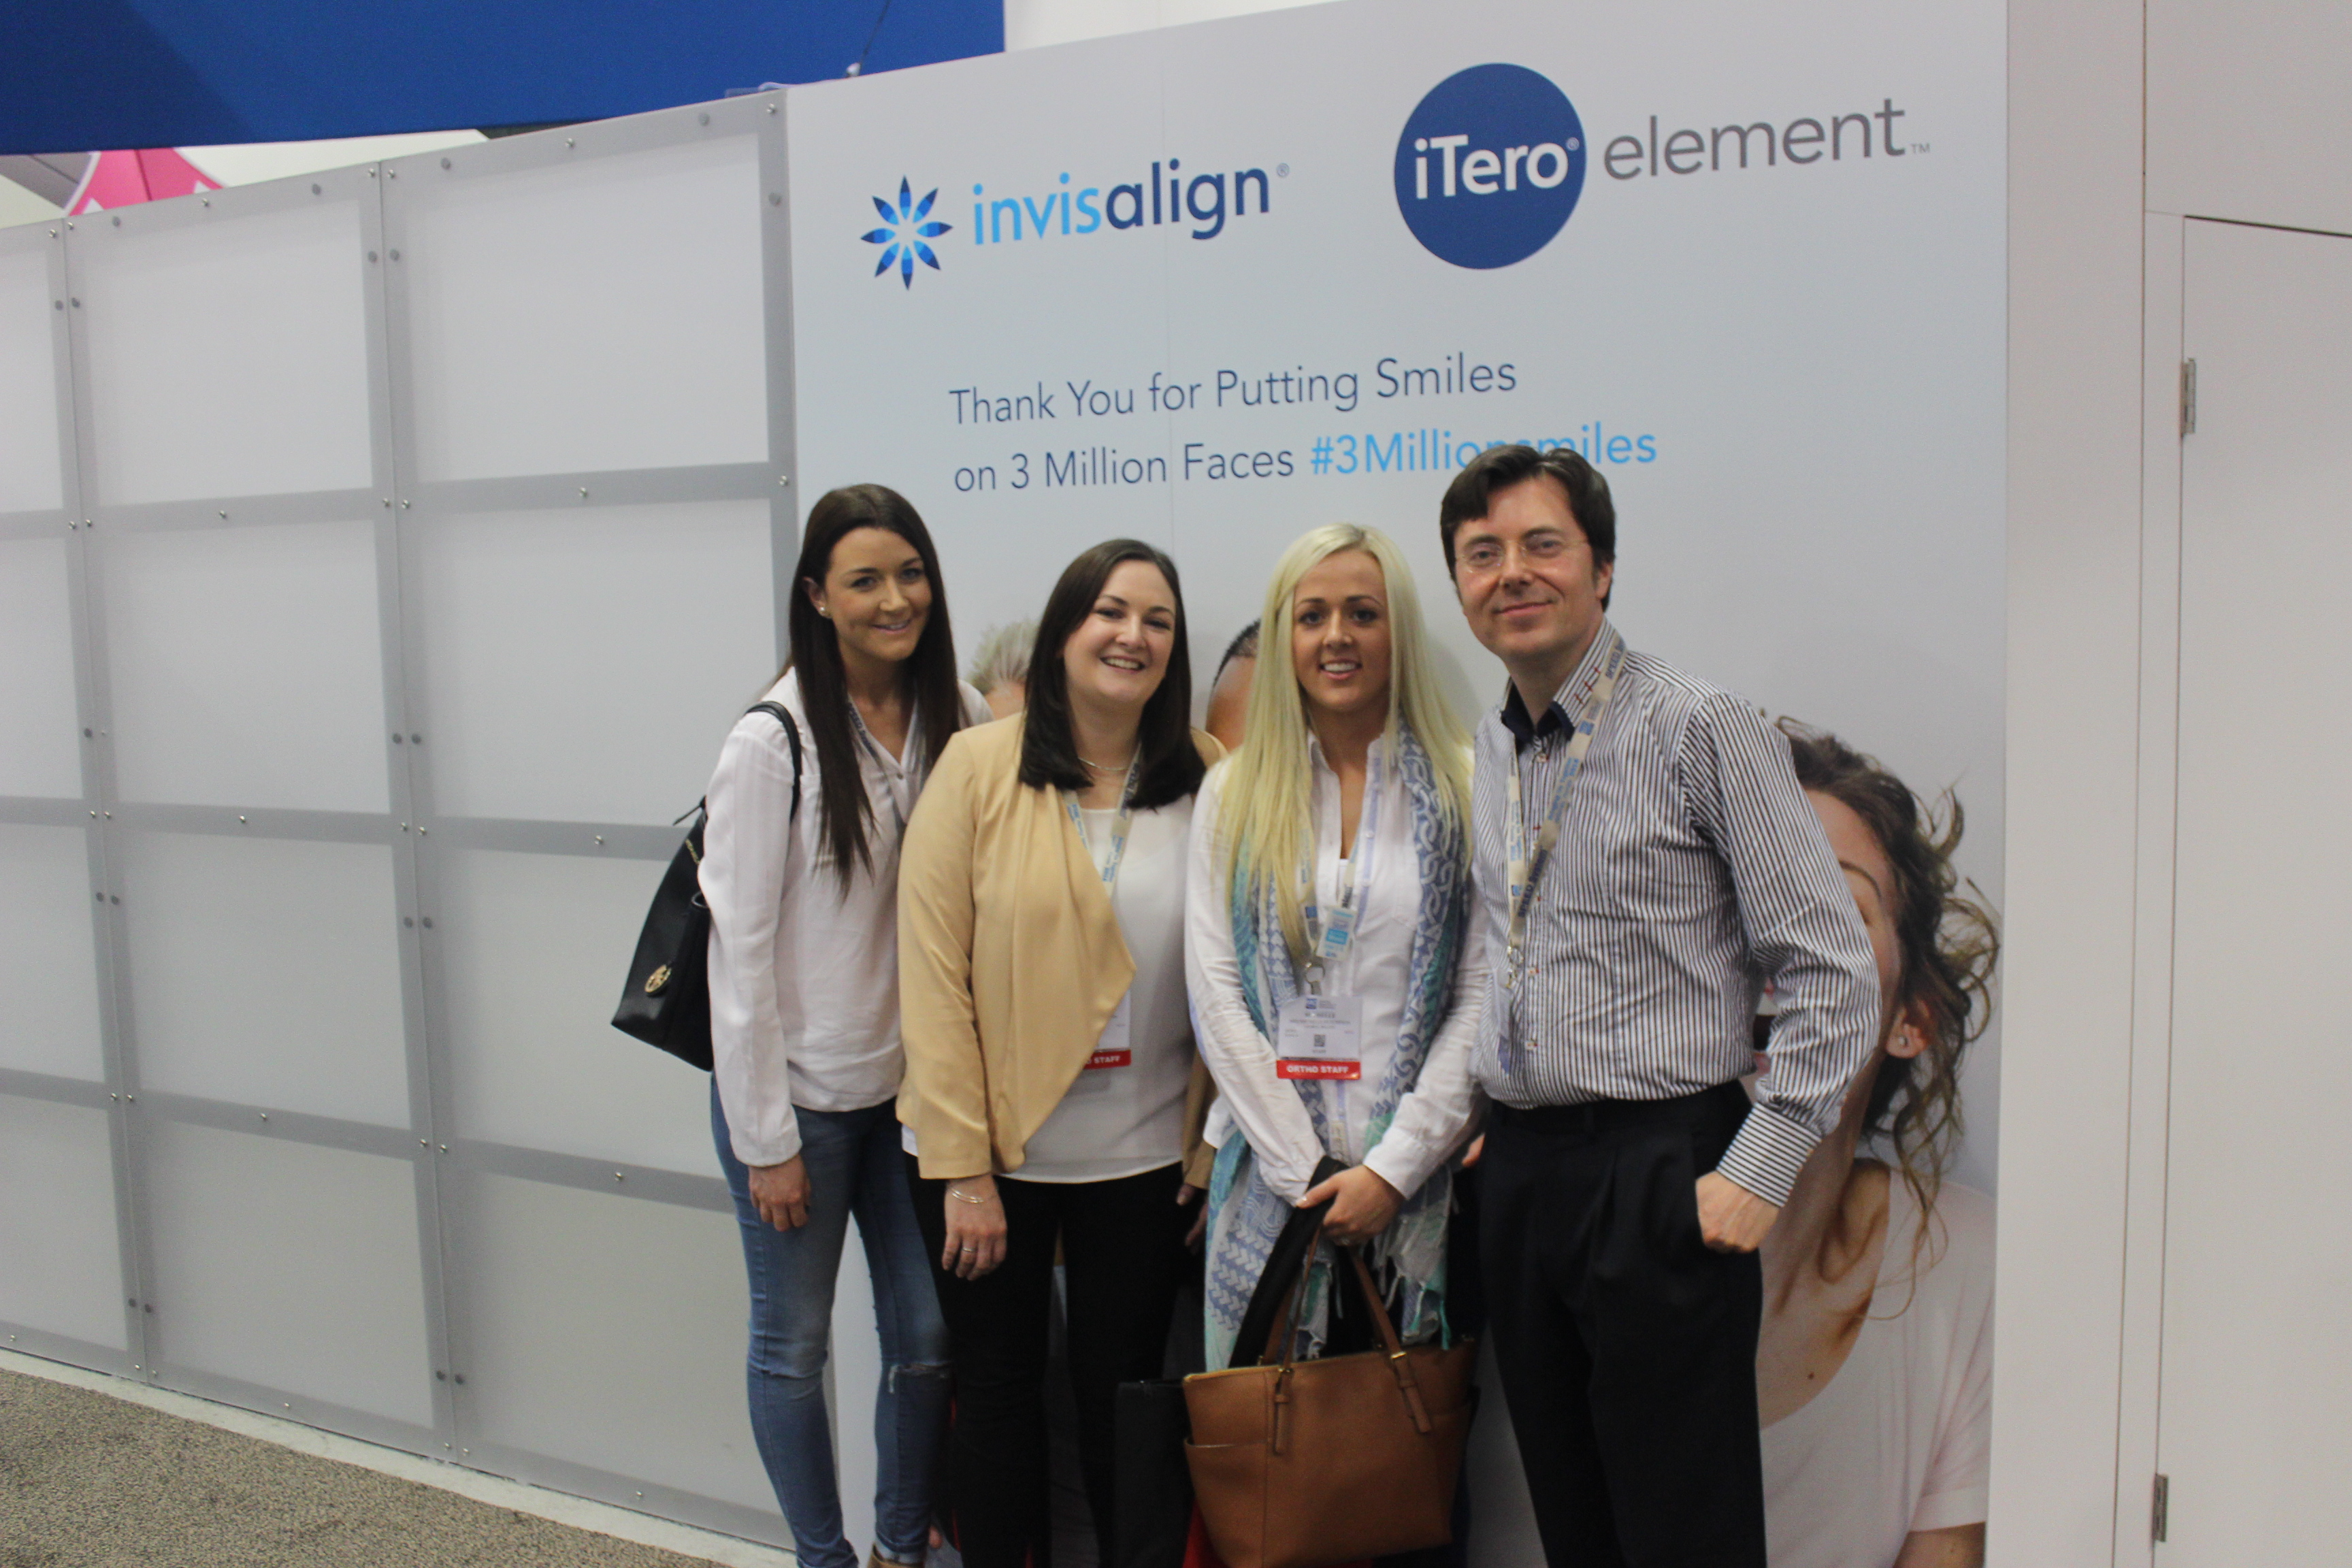 The Swords Orthodontics Team at the Invisalign exhibition at AAO 2015